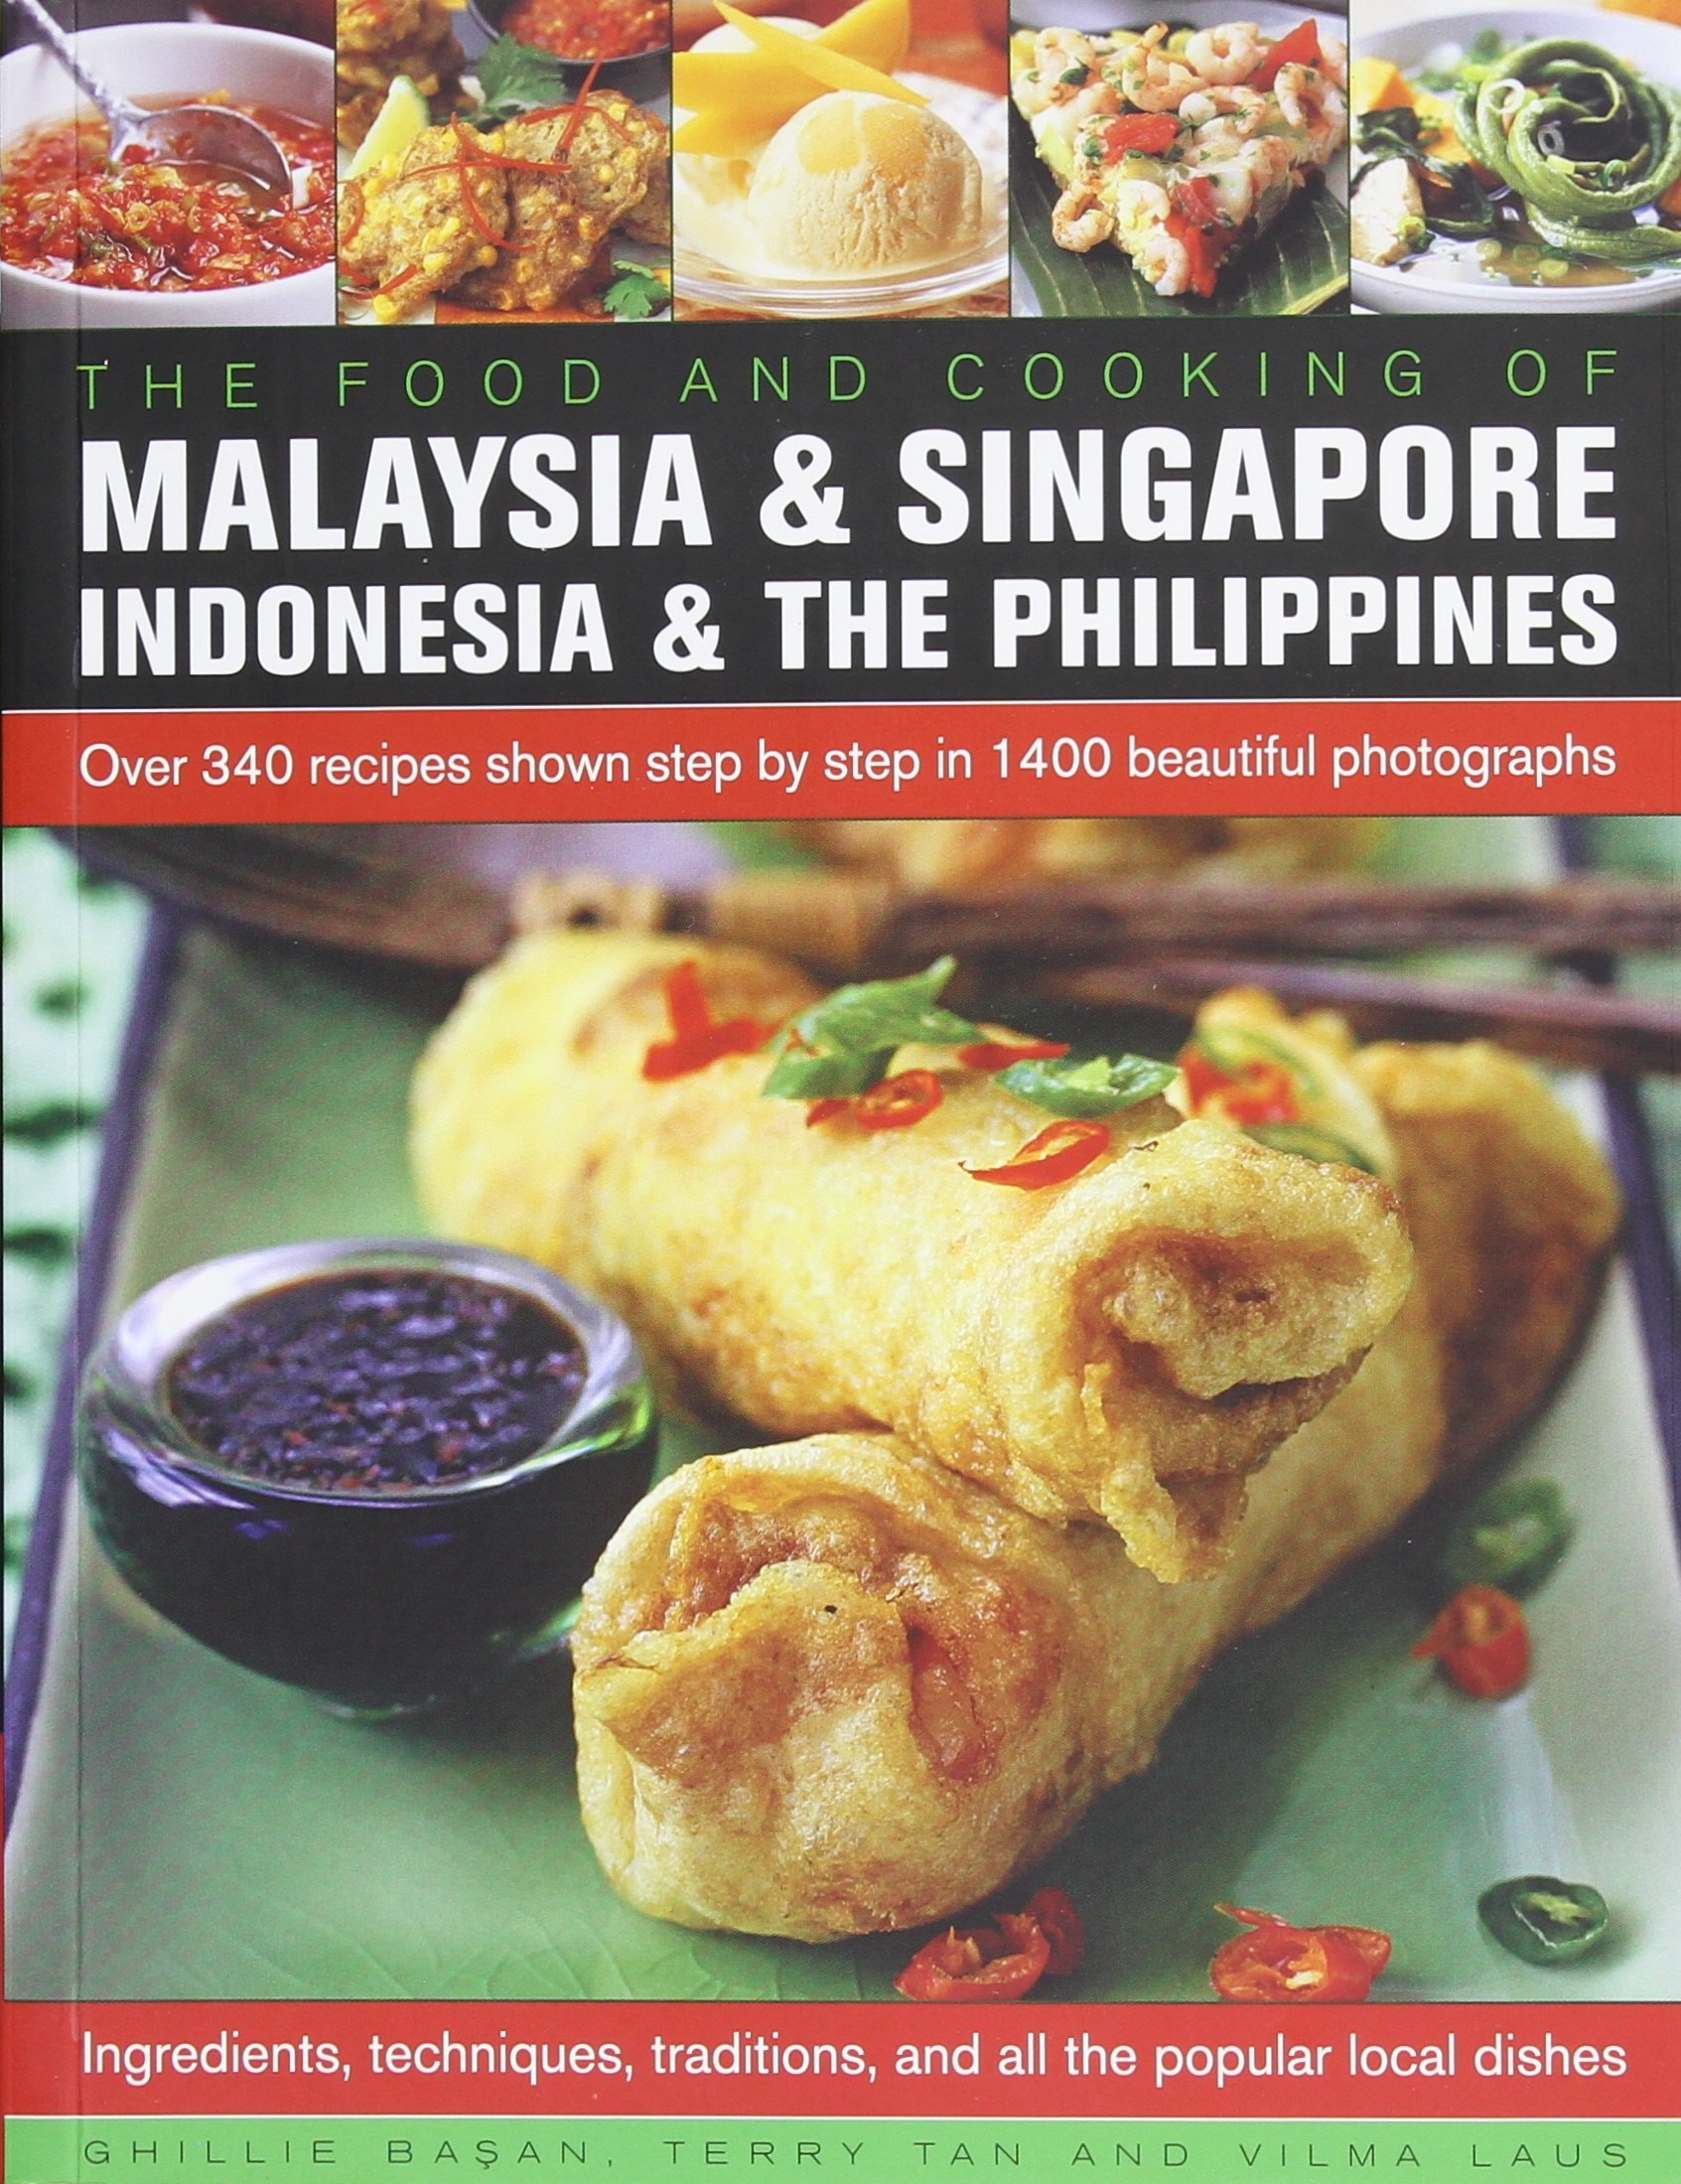 Food and cooking of malaysia singapore indonesia the food and cooking of malaysia singapore indonesia the philippines over 340 recipes shown step by step in 1400 beautiful photographs ghillie basan forumfinder Images